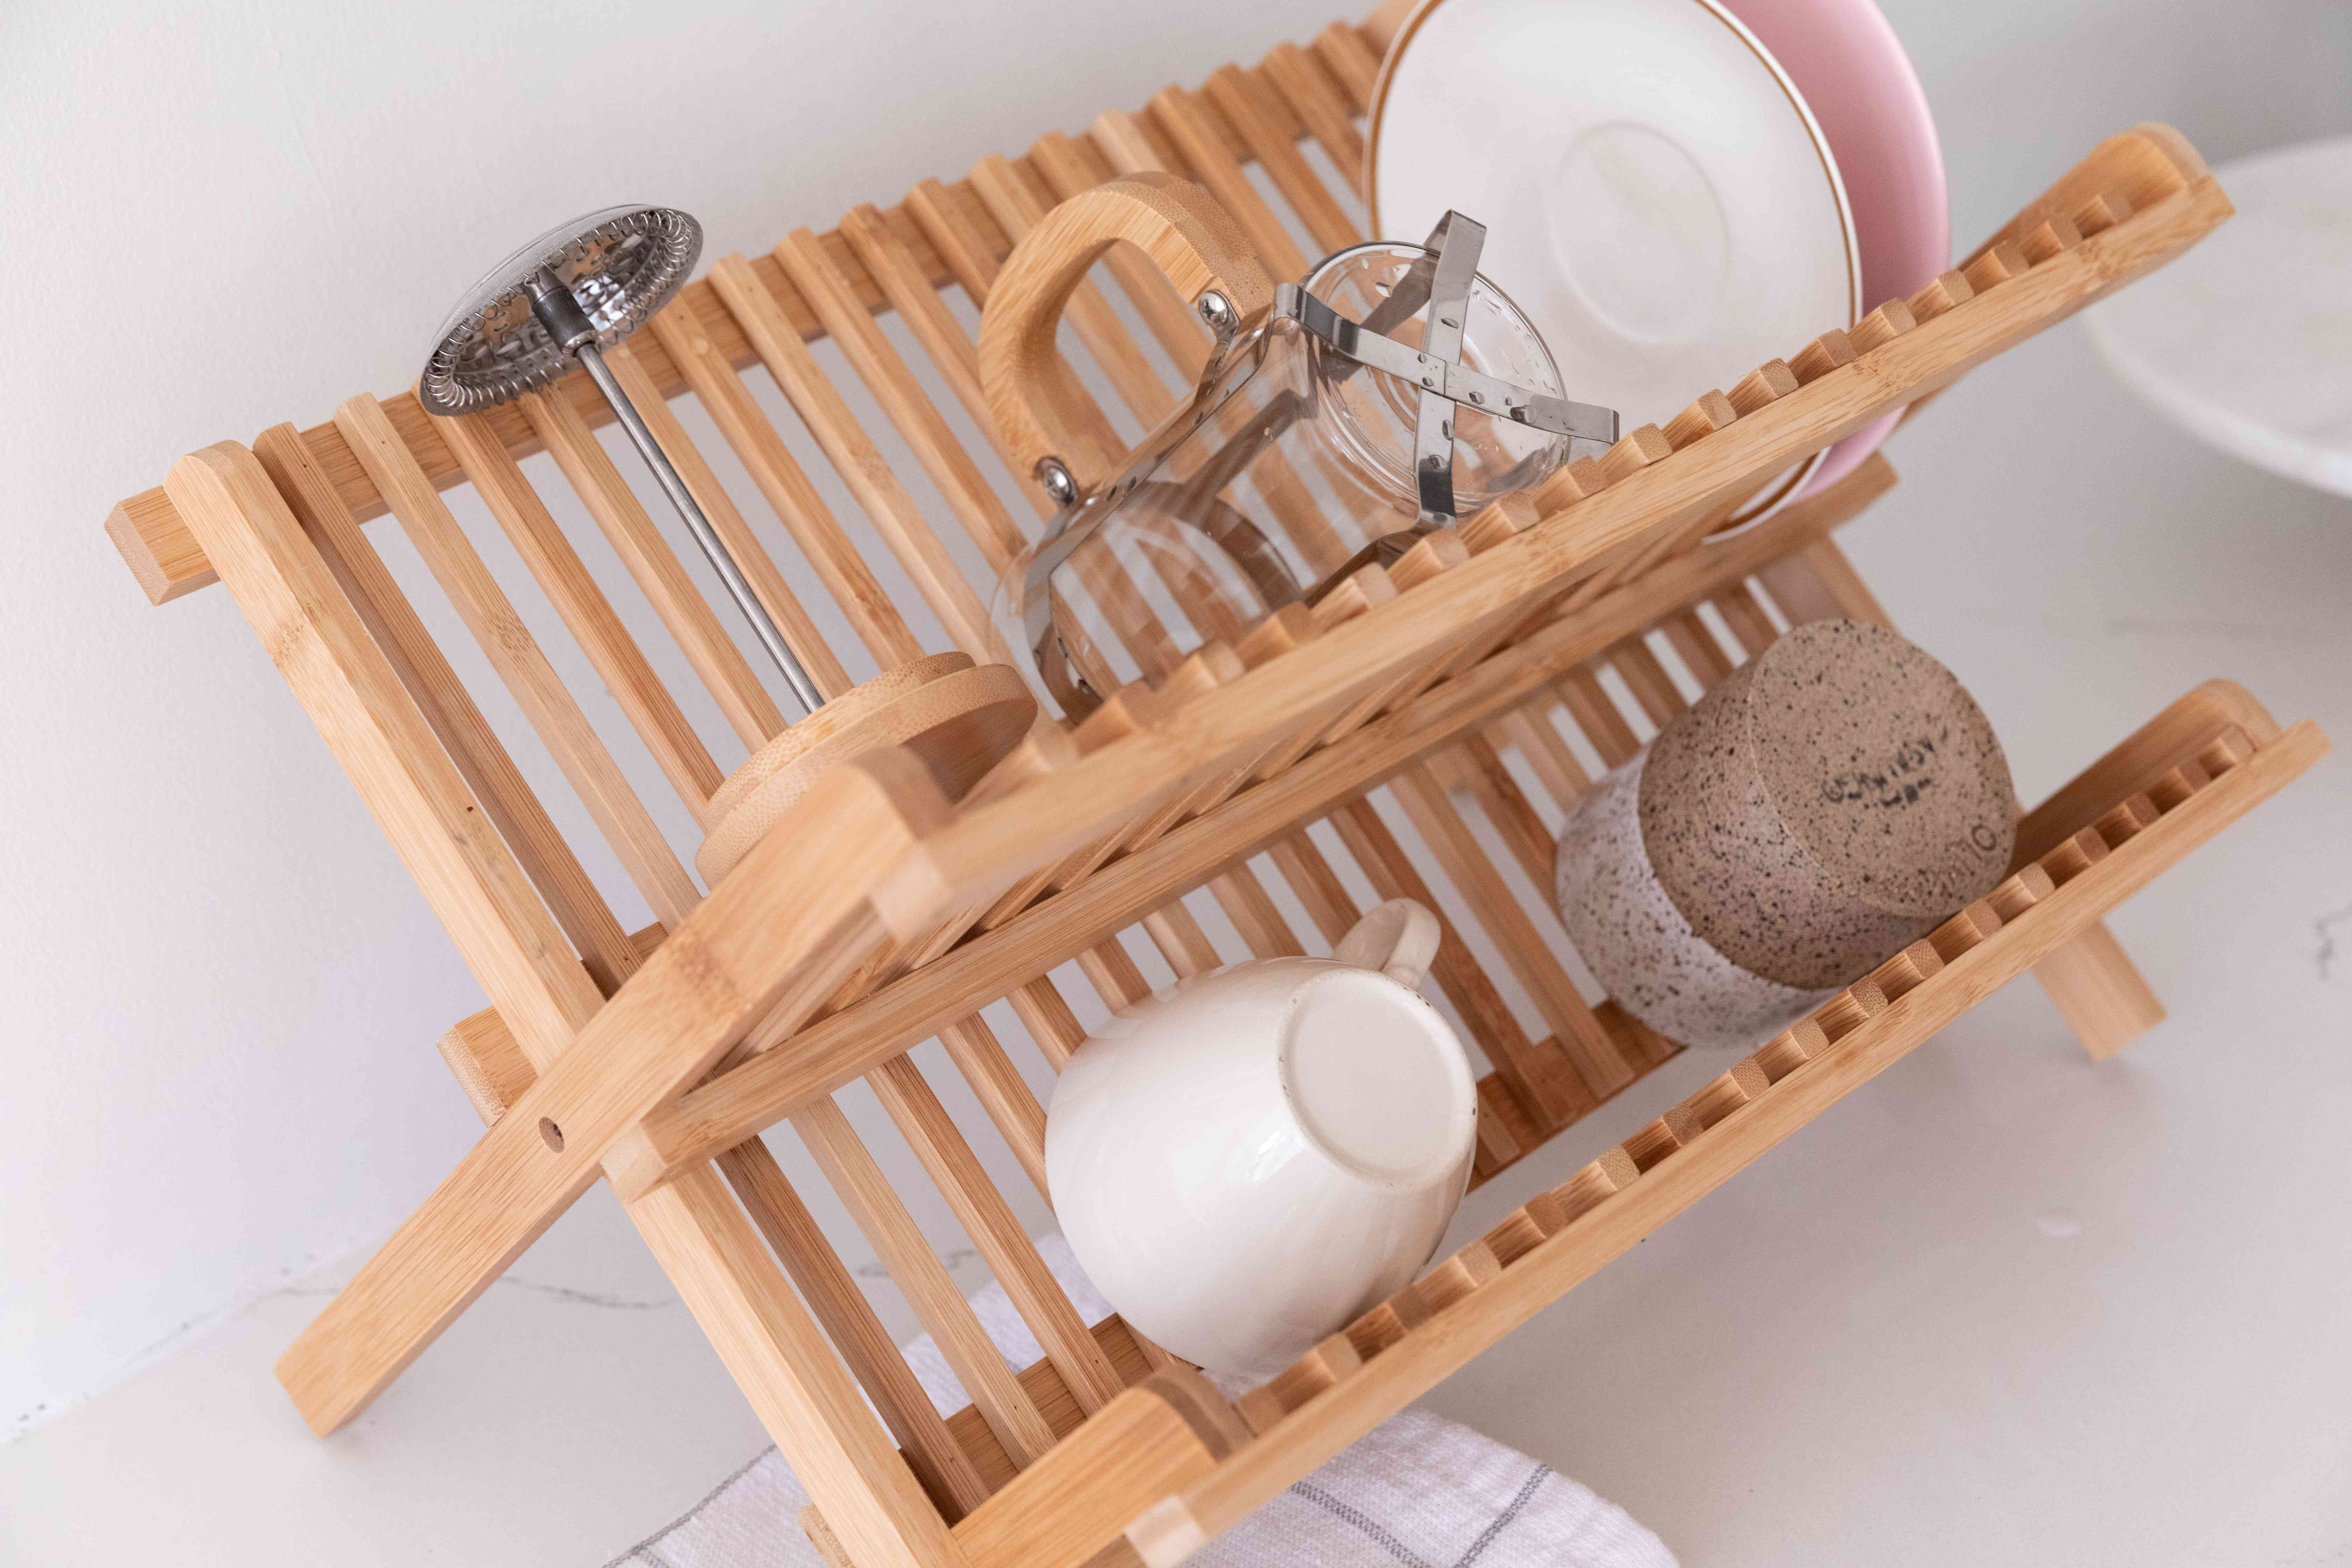 French press in a drying rack